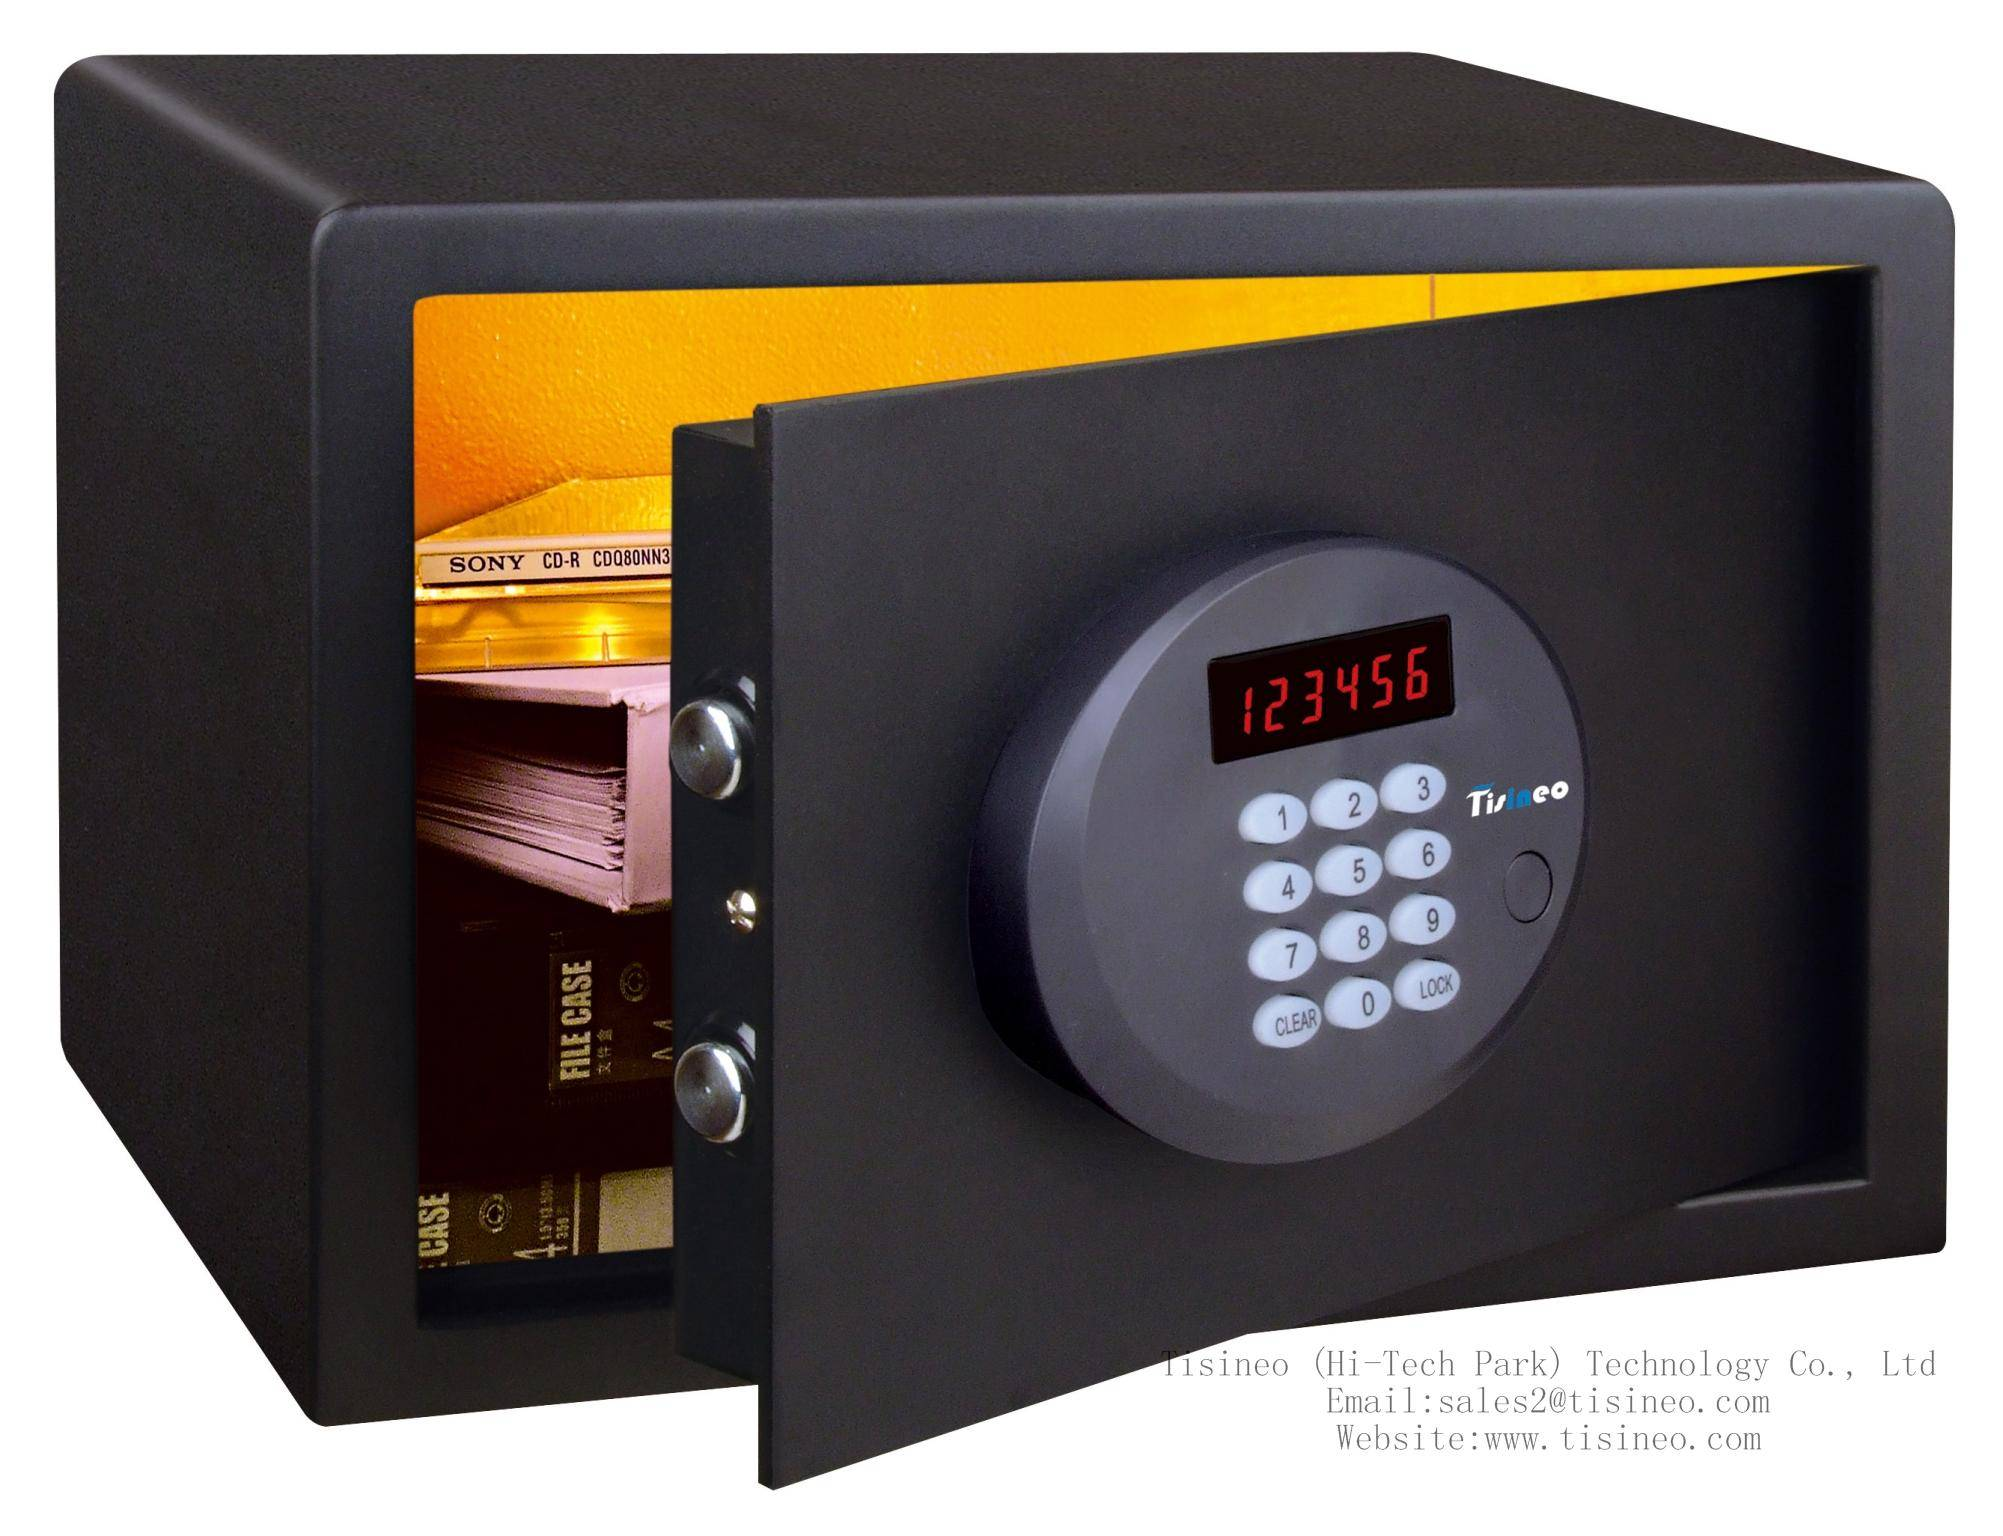 Hotel electronic digital safe Tisineo SShc